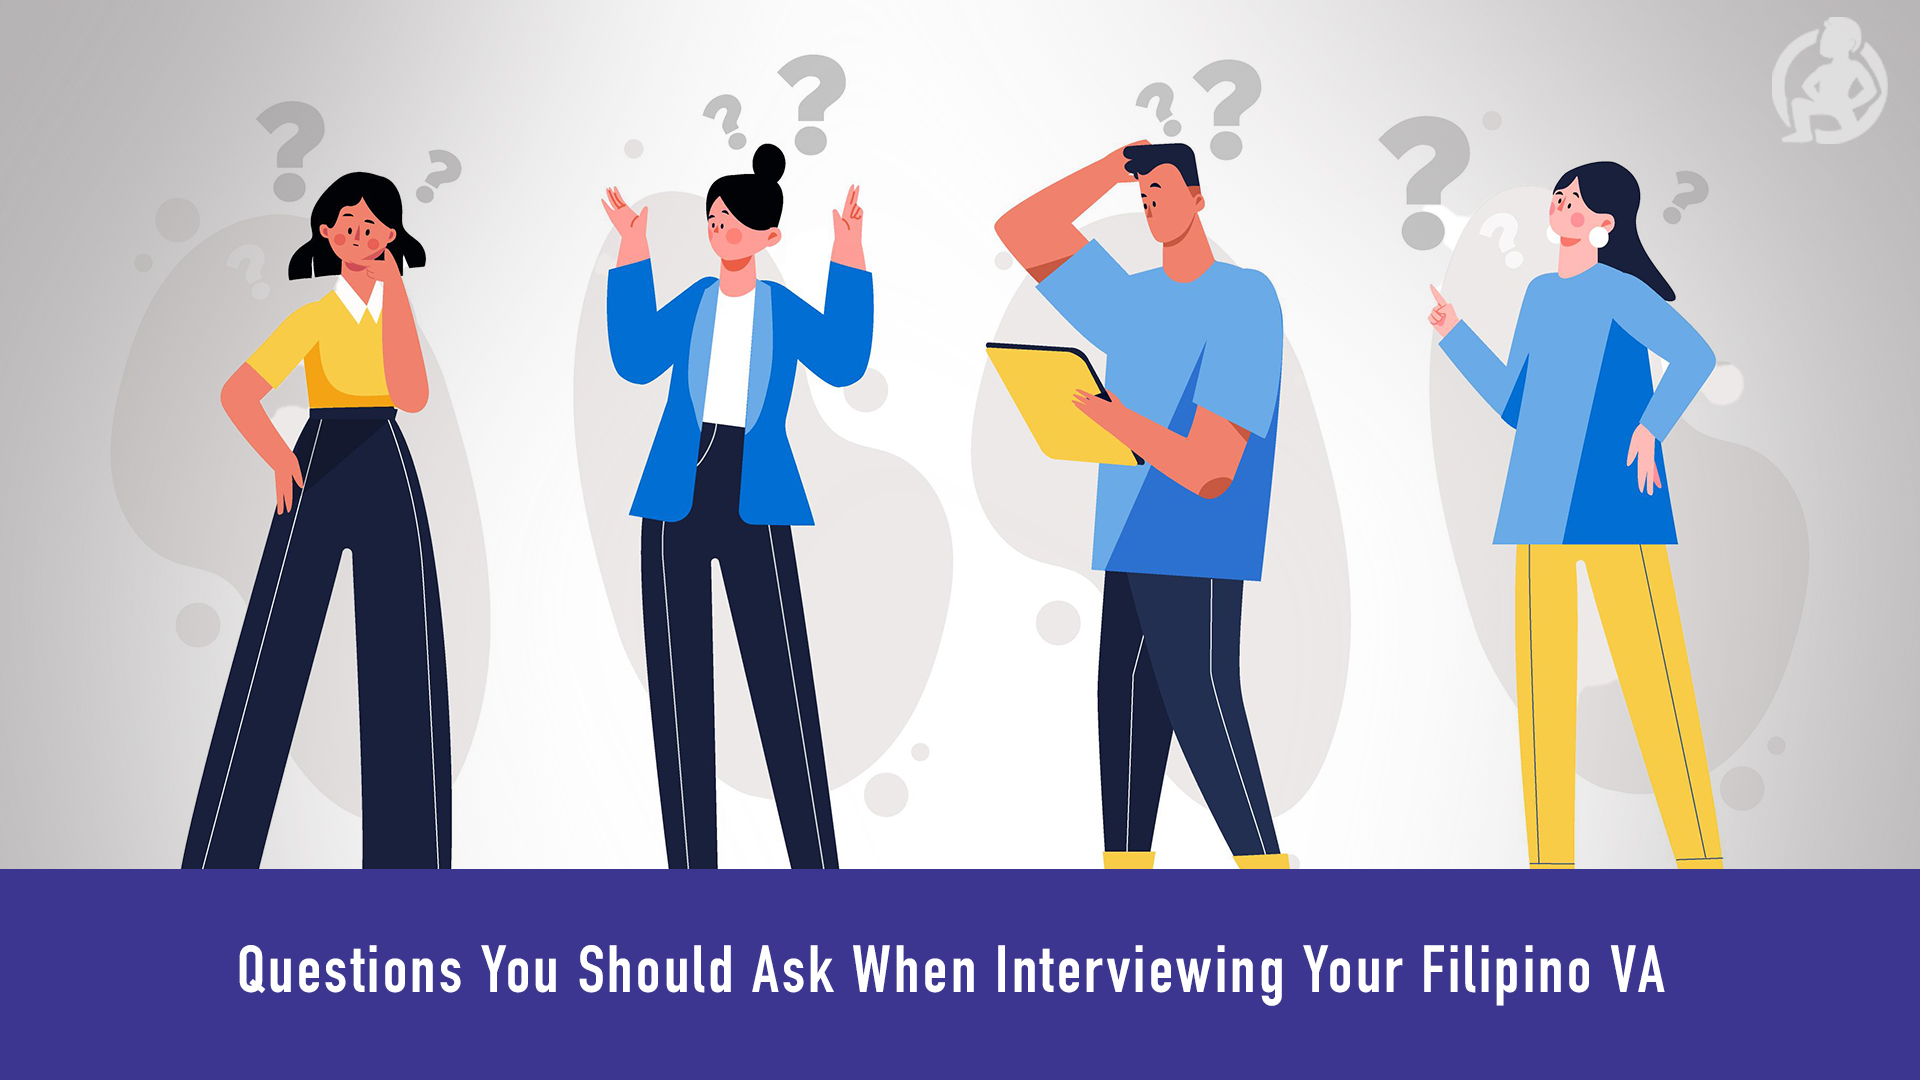 681 Questions You Should Ask When Interviewing Your Filipino VA Feature